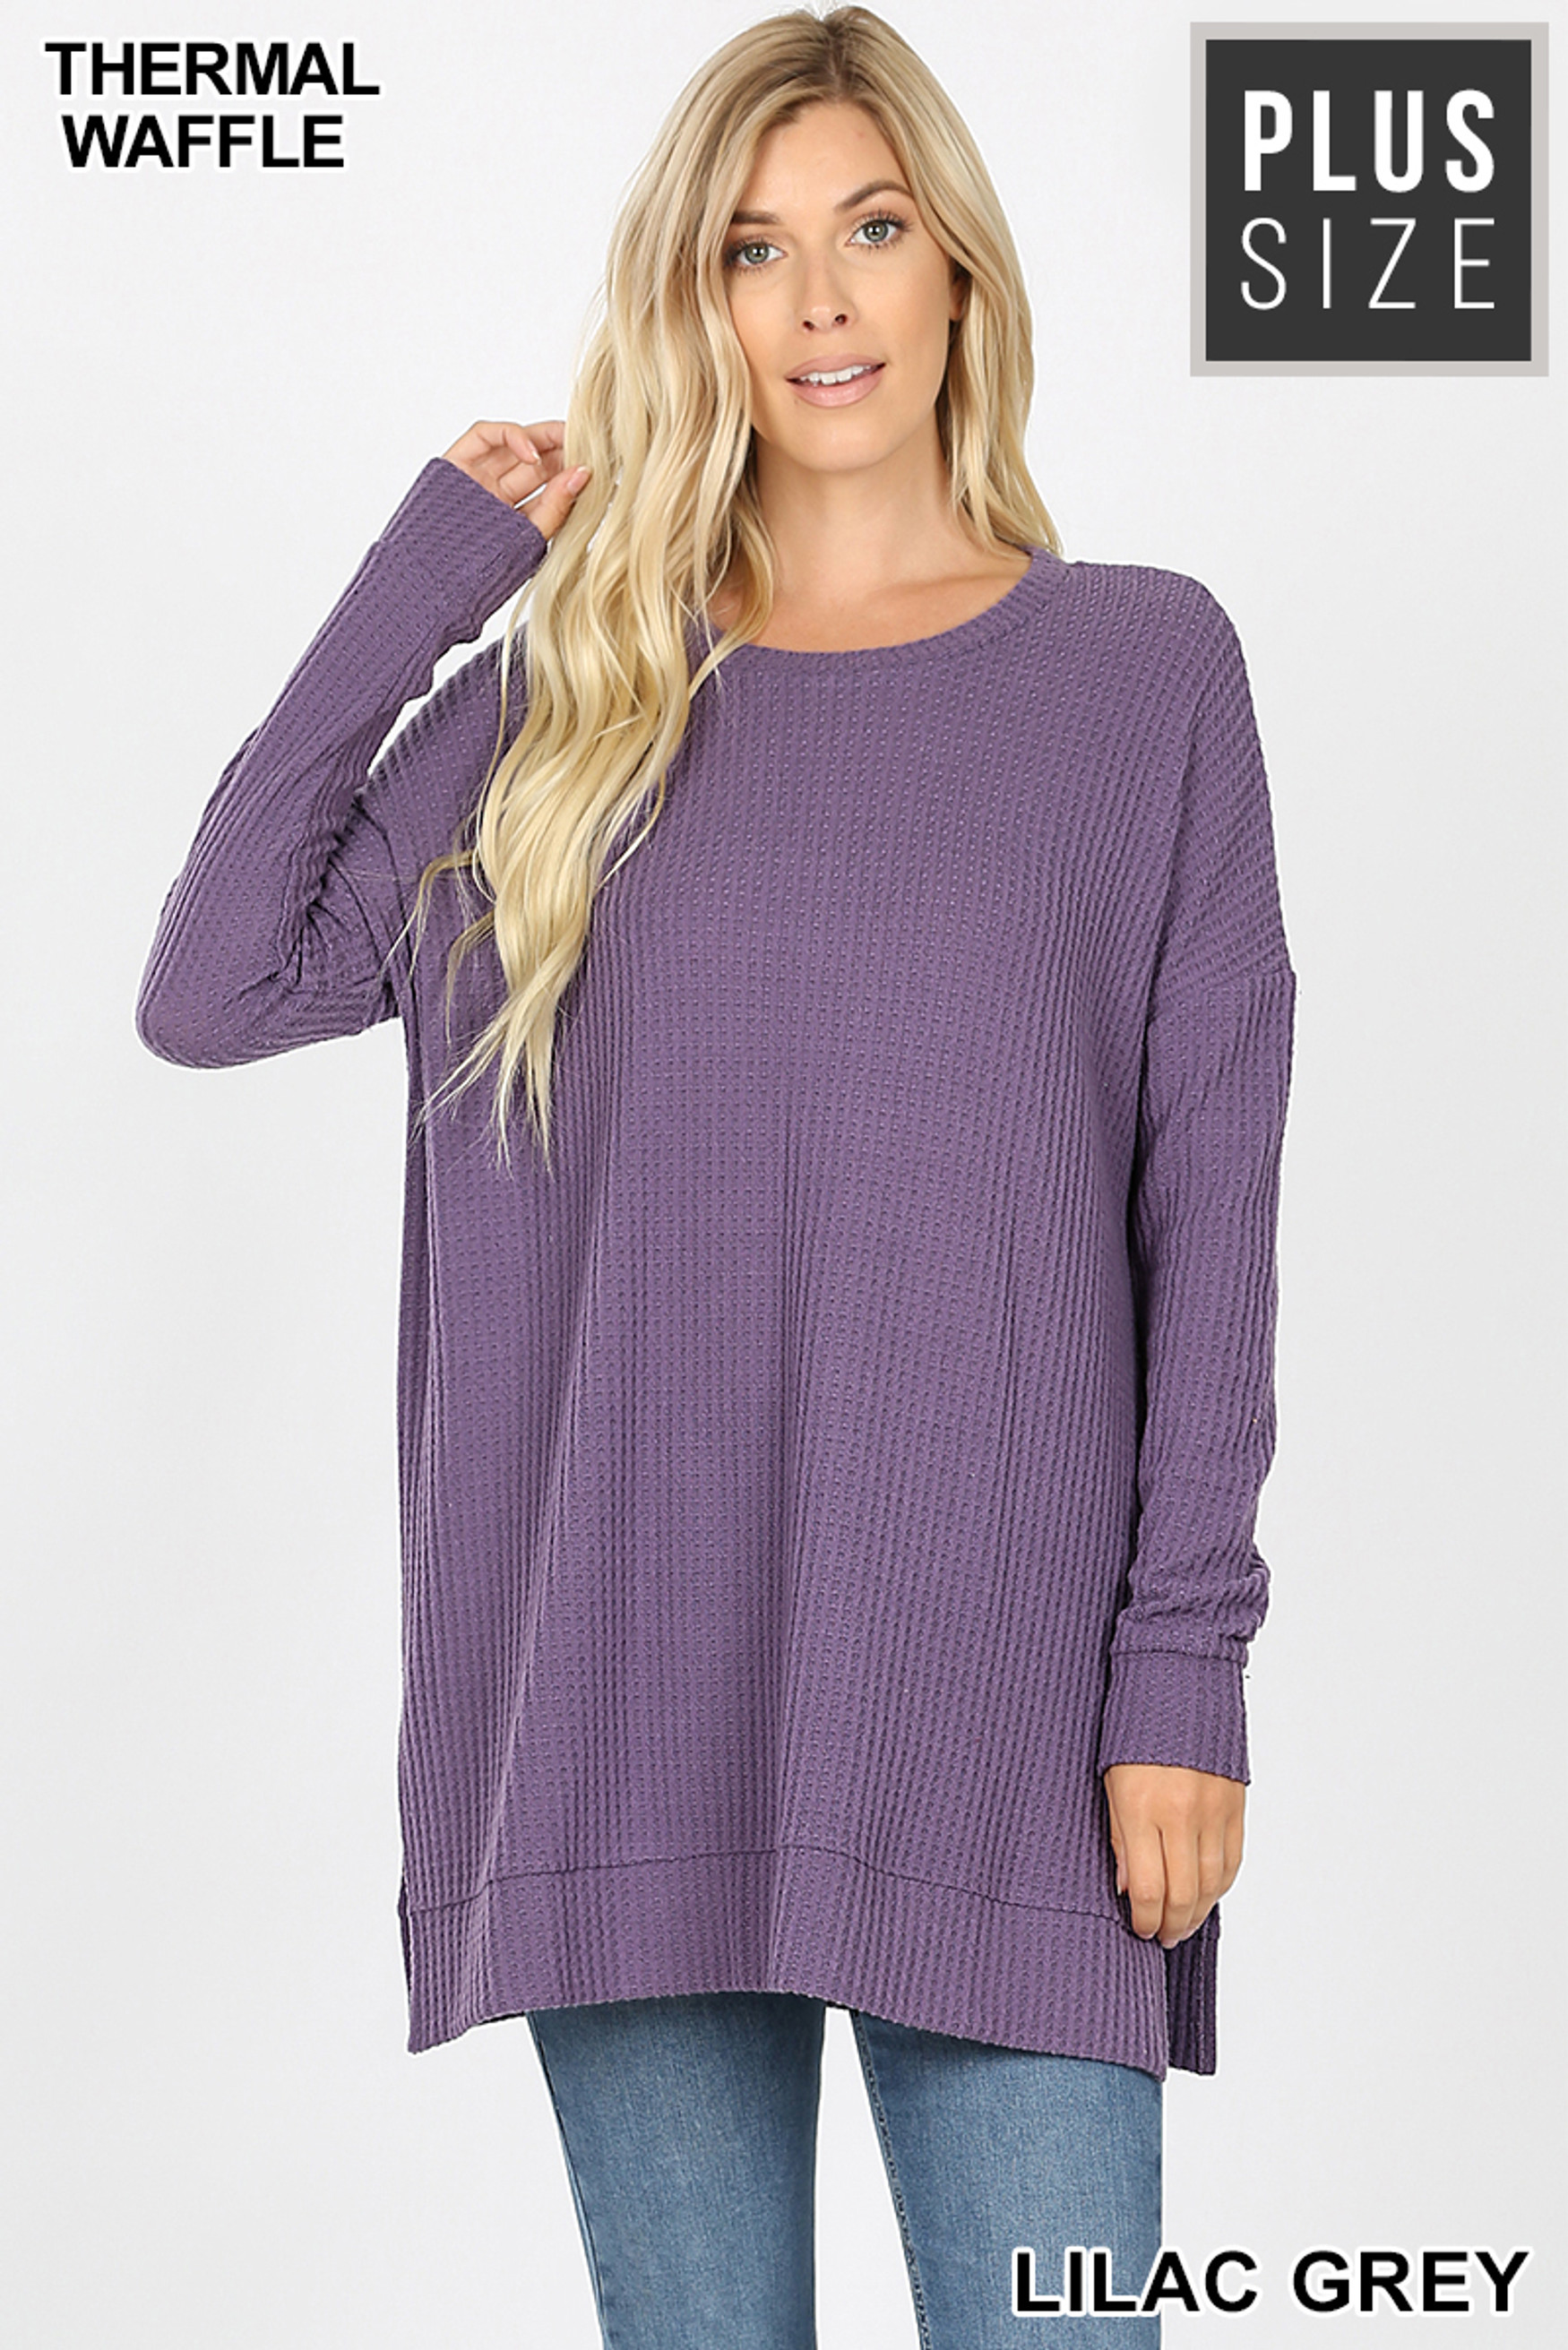 Front image of Lilac Grey Brushed Thermal Waffle Knit Round Neck Plus Size Sweater